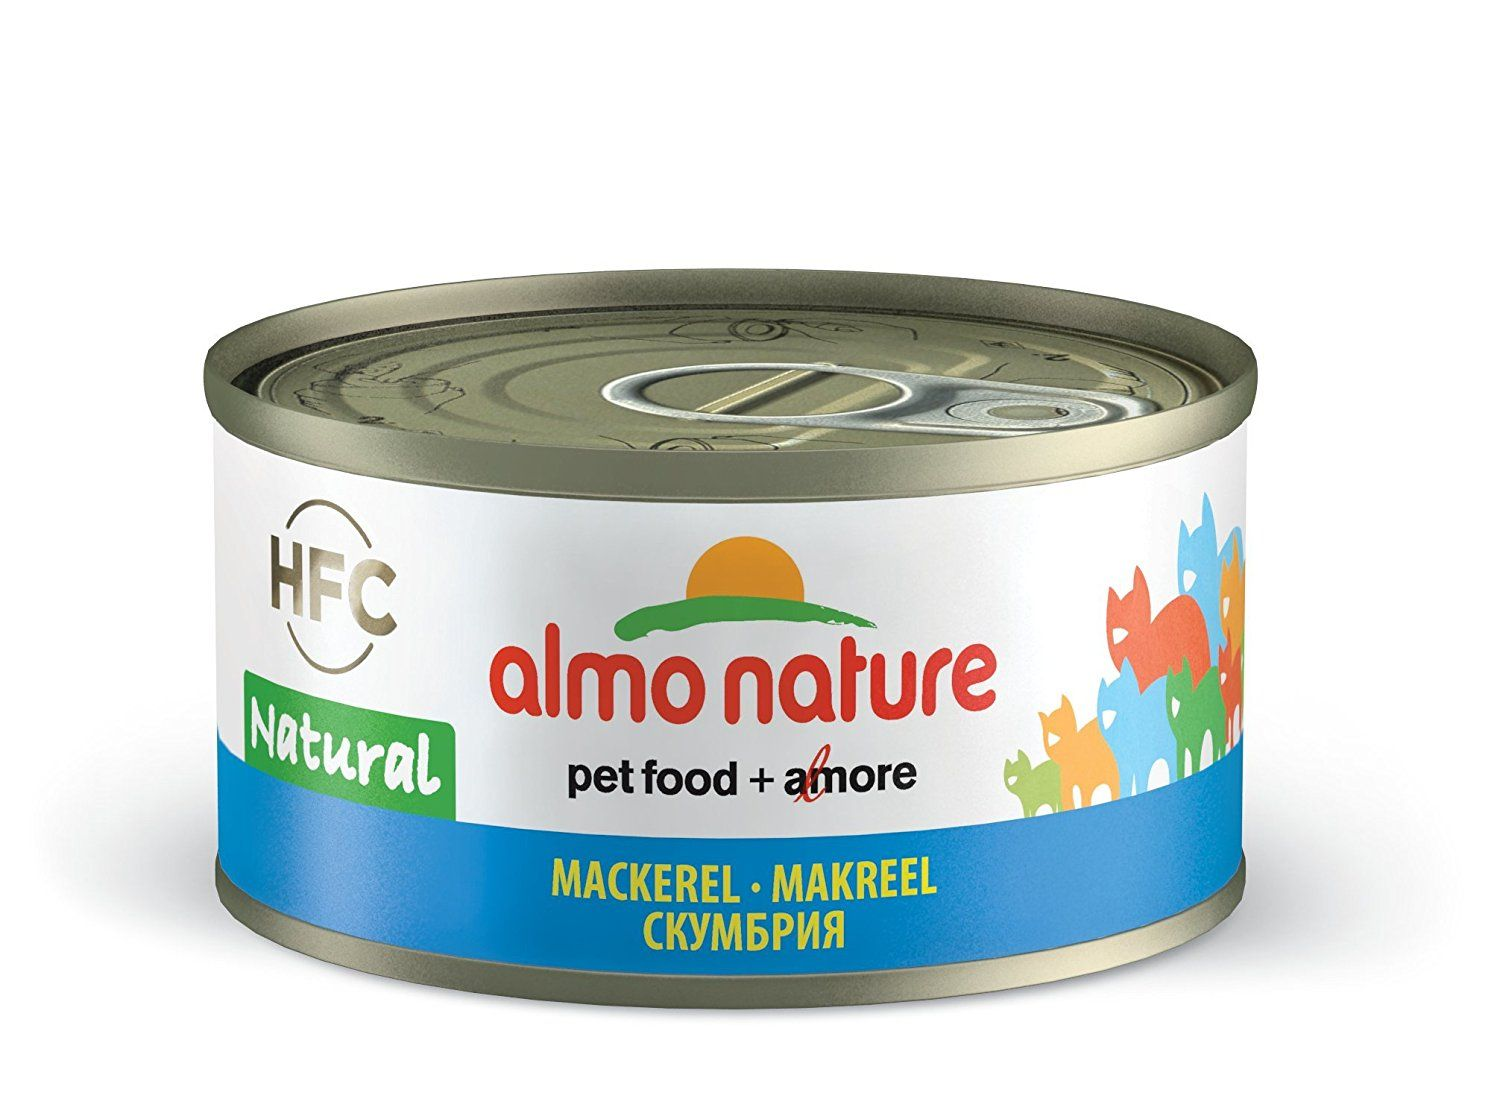 Almo Nature HFC Natural with Mackerel (Pack of 24 x 70g